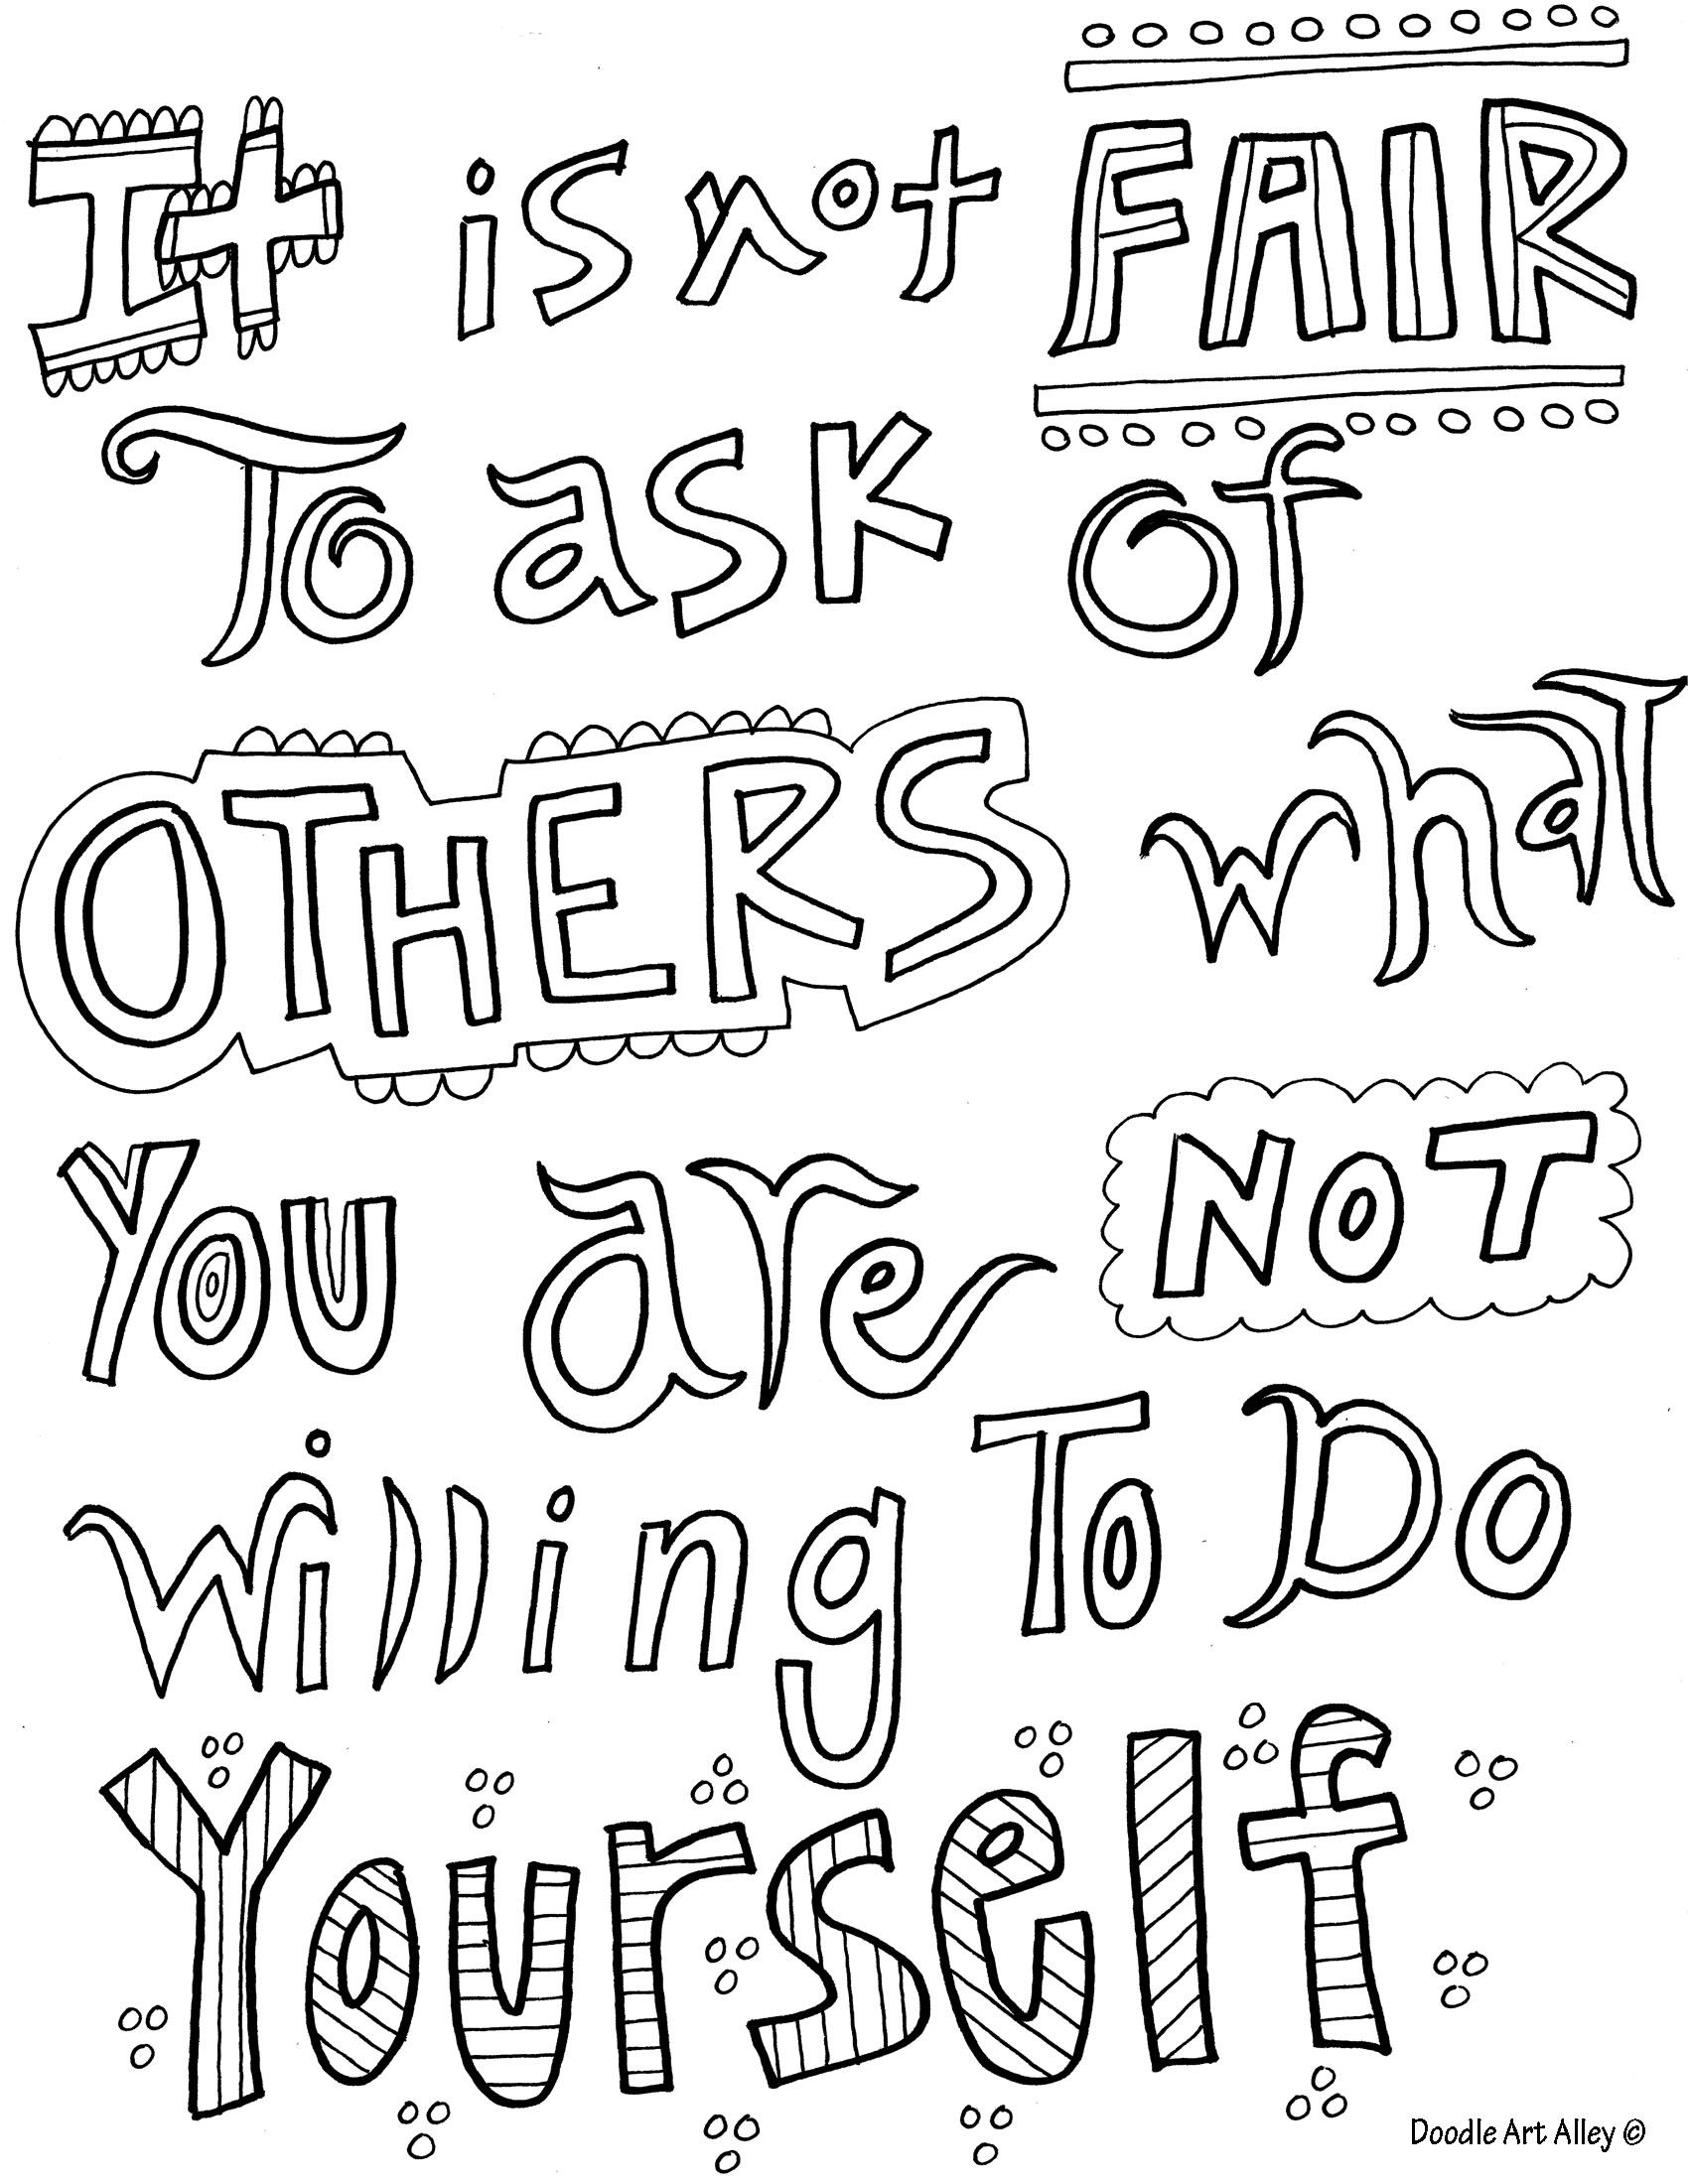 coloring pages with quotes family quote coloring pages doodle art alley coloring quotes with pages